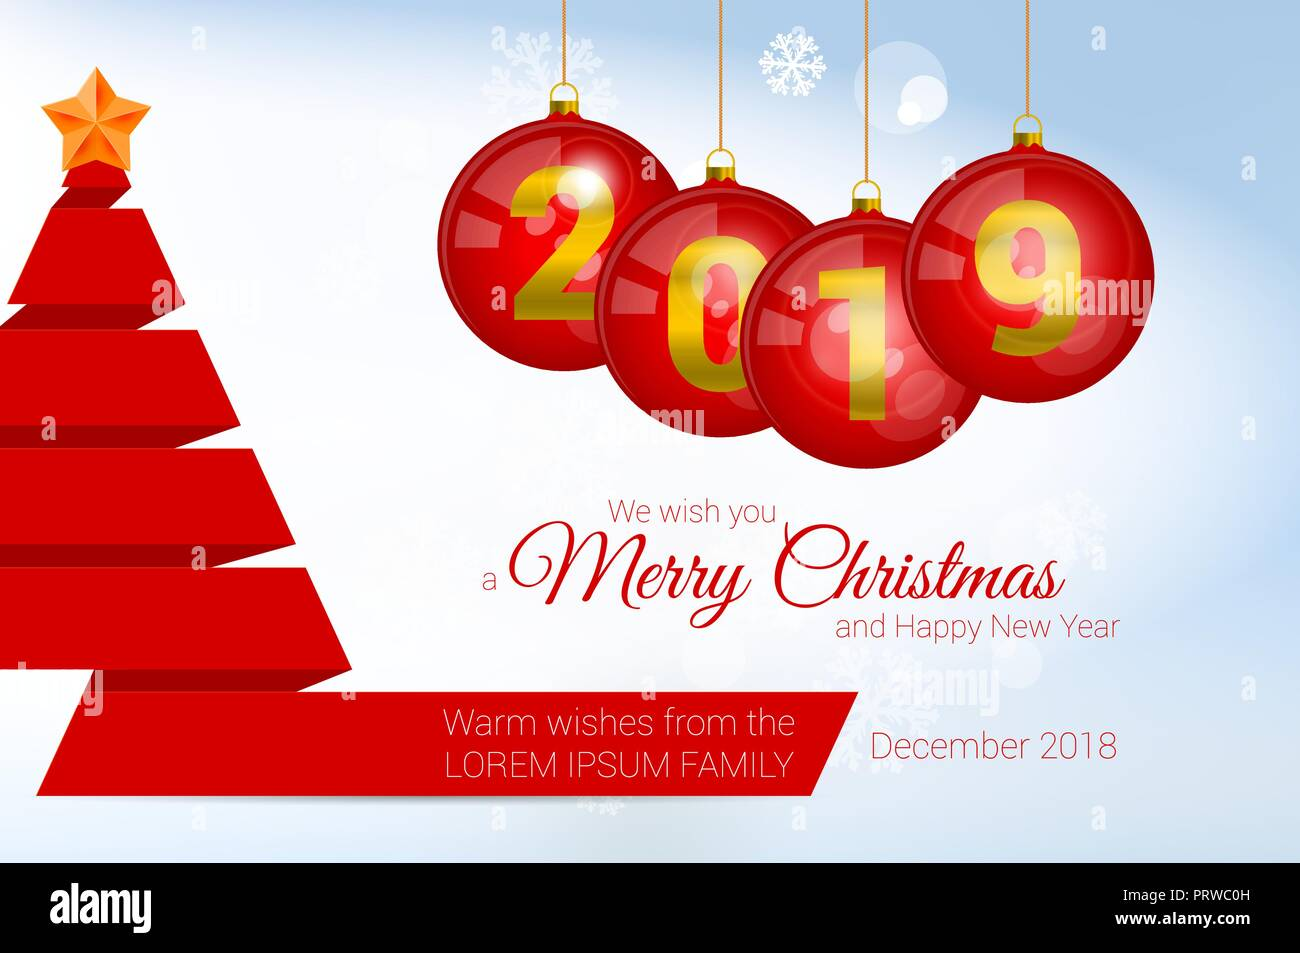 2019 Vector Christmas Greeting Card Template. Merry Christmas and ...